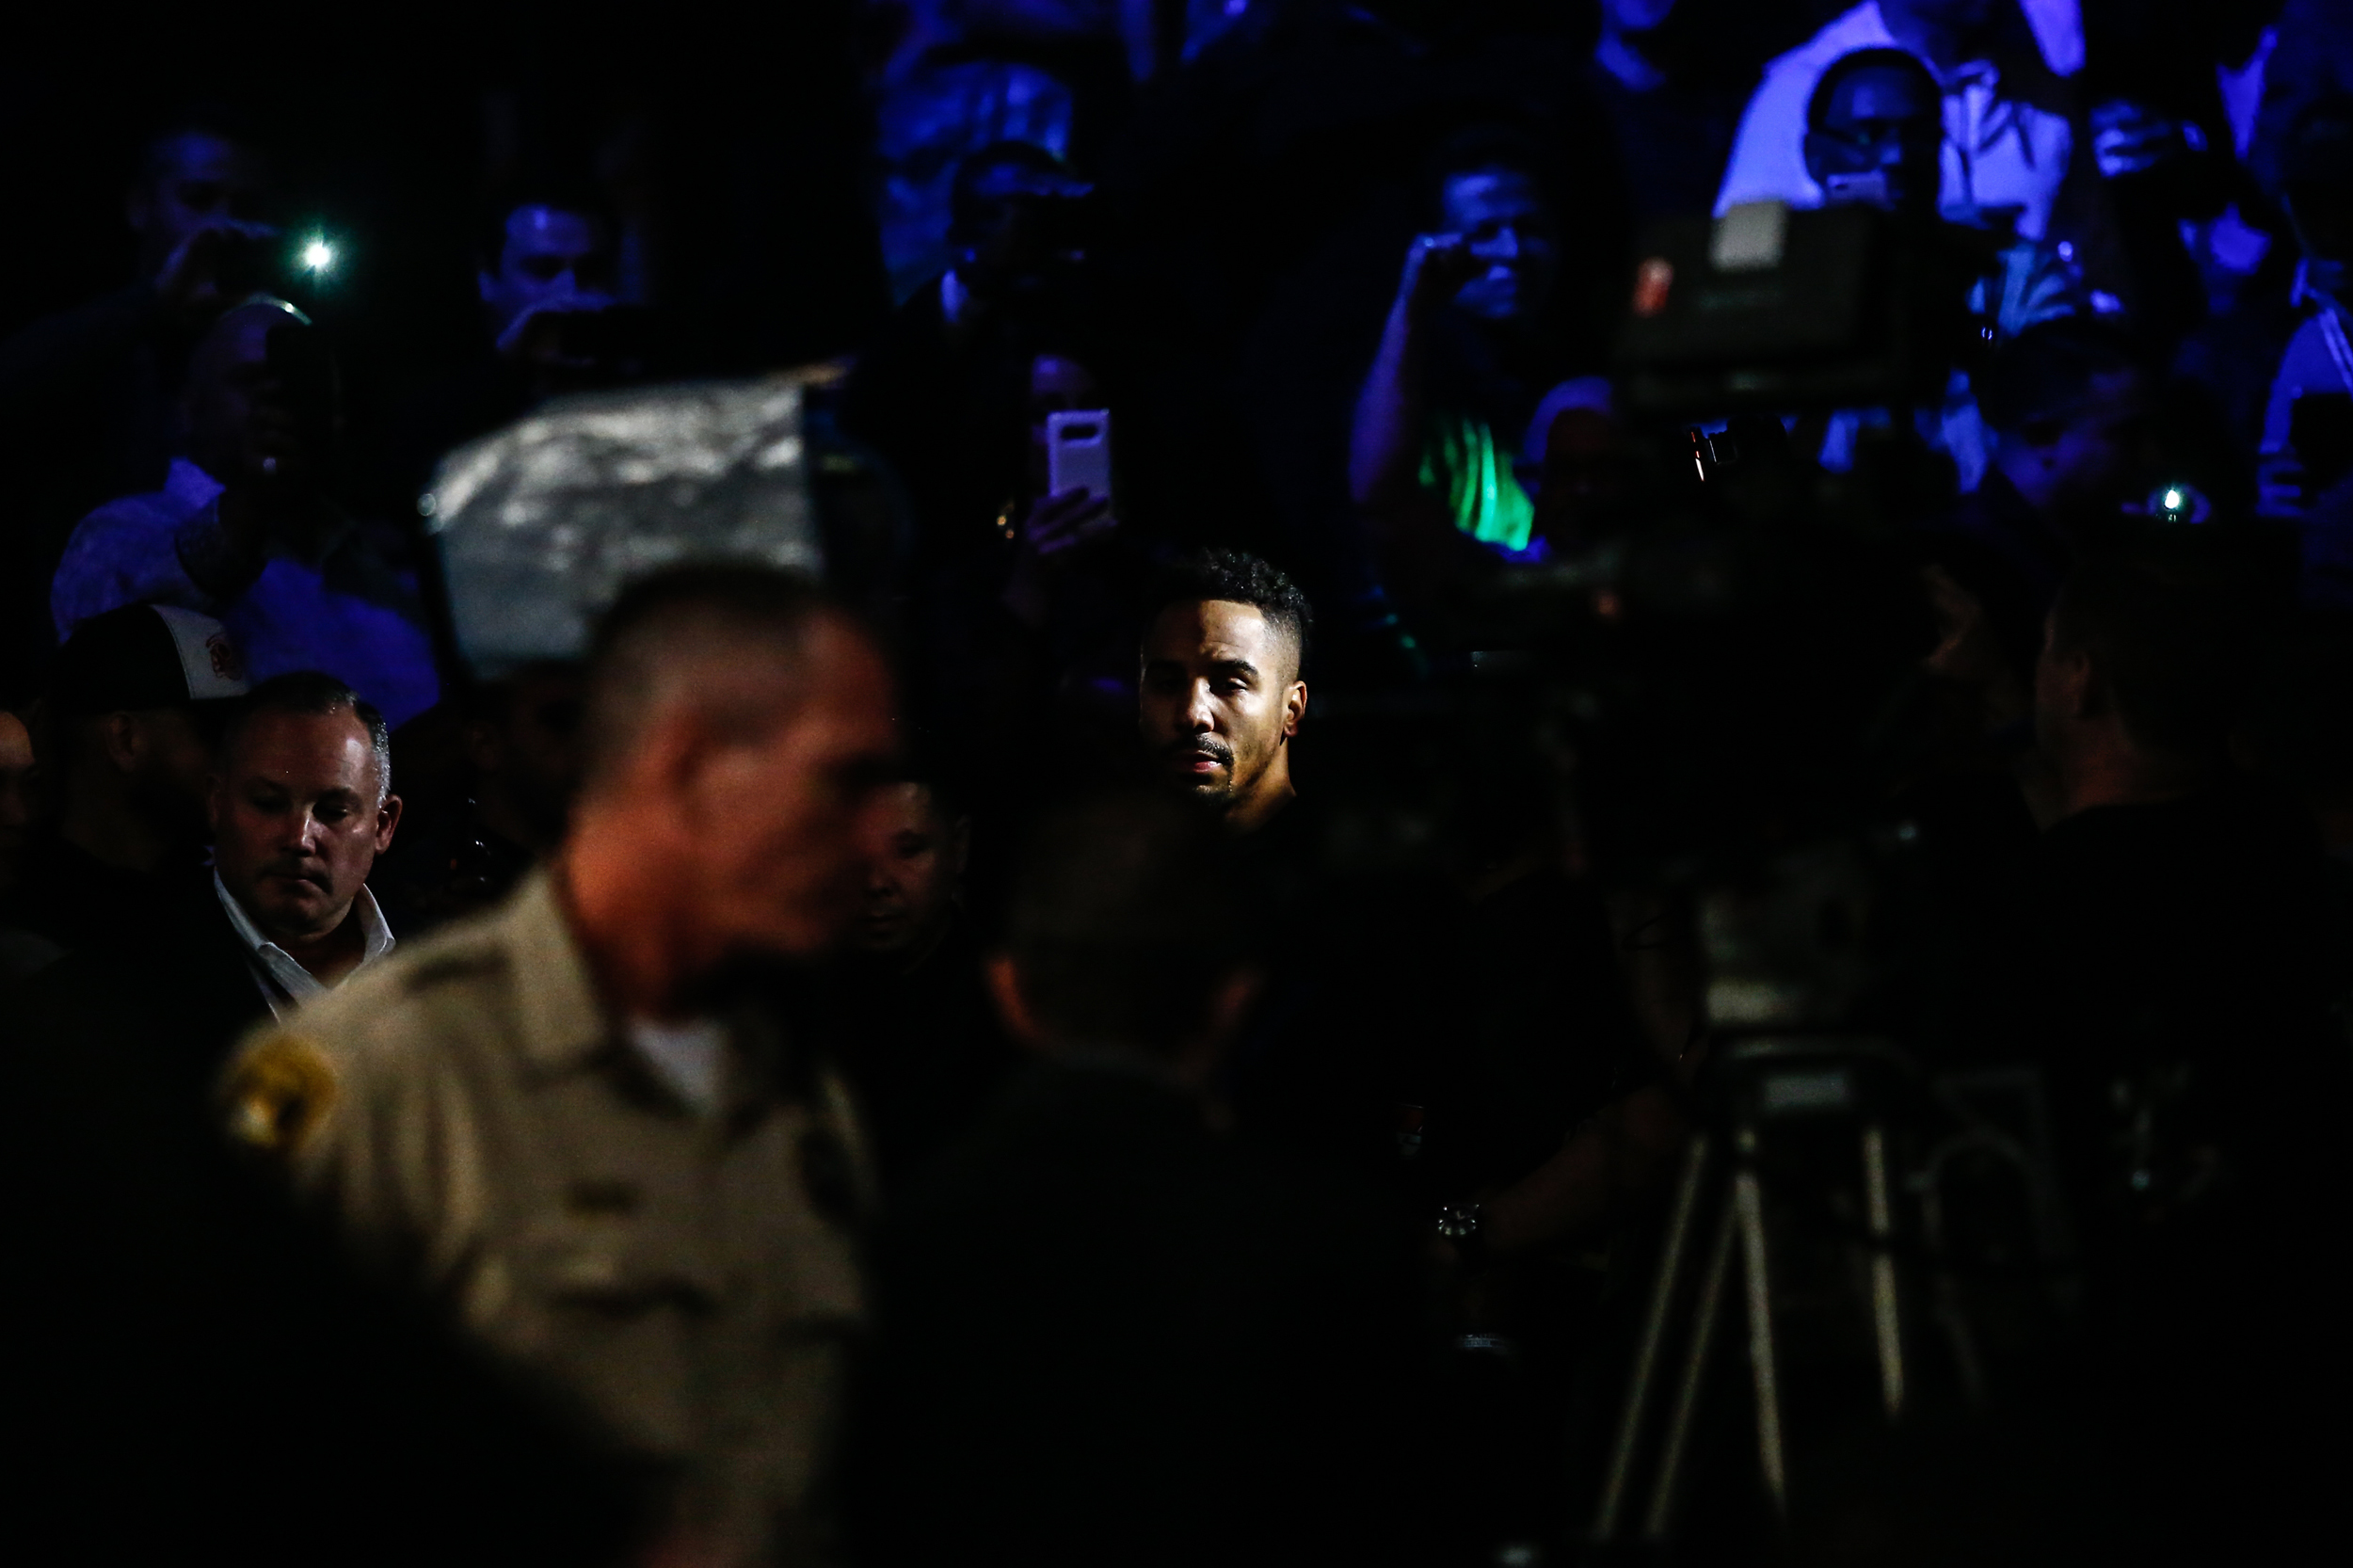 Light Heavyweight boxer Andre Ward walks to the ring as he gets ready to fight opponent Sergey Kovalev for the WBA/WBO/IBF world light heavyweight championship in a twelve-round bout on November 19th at the T-Mobile Arena in Las Vegas.